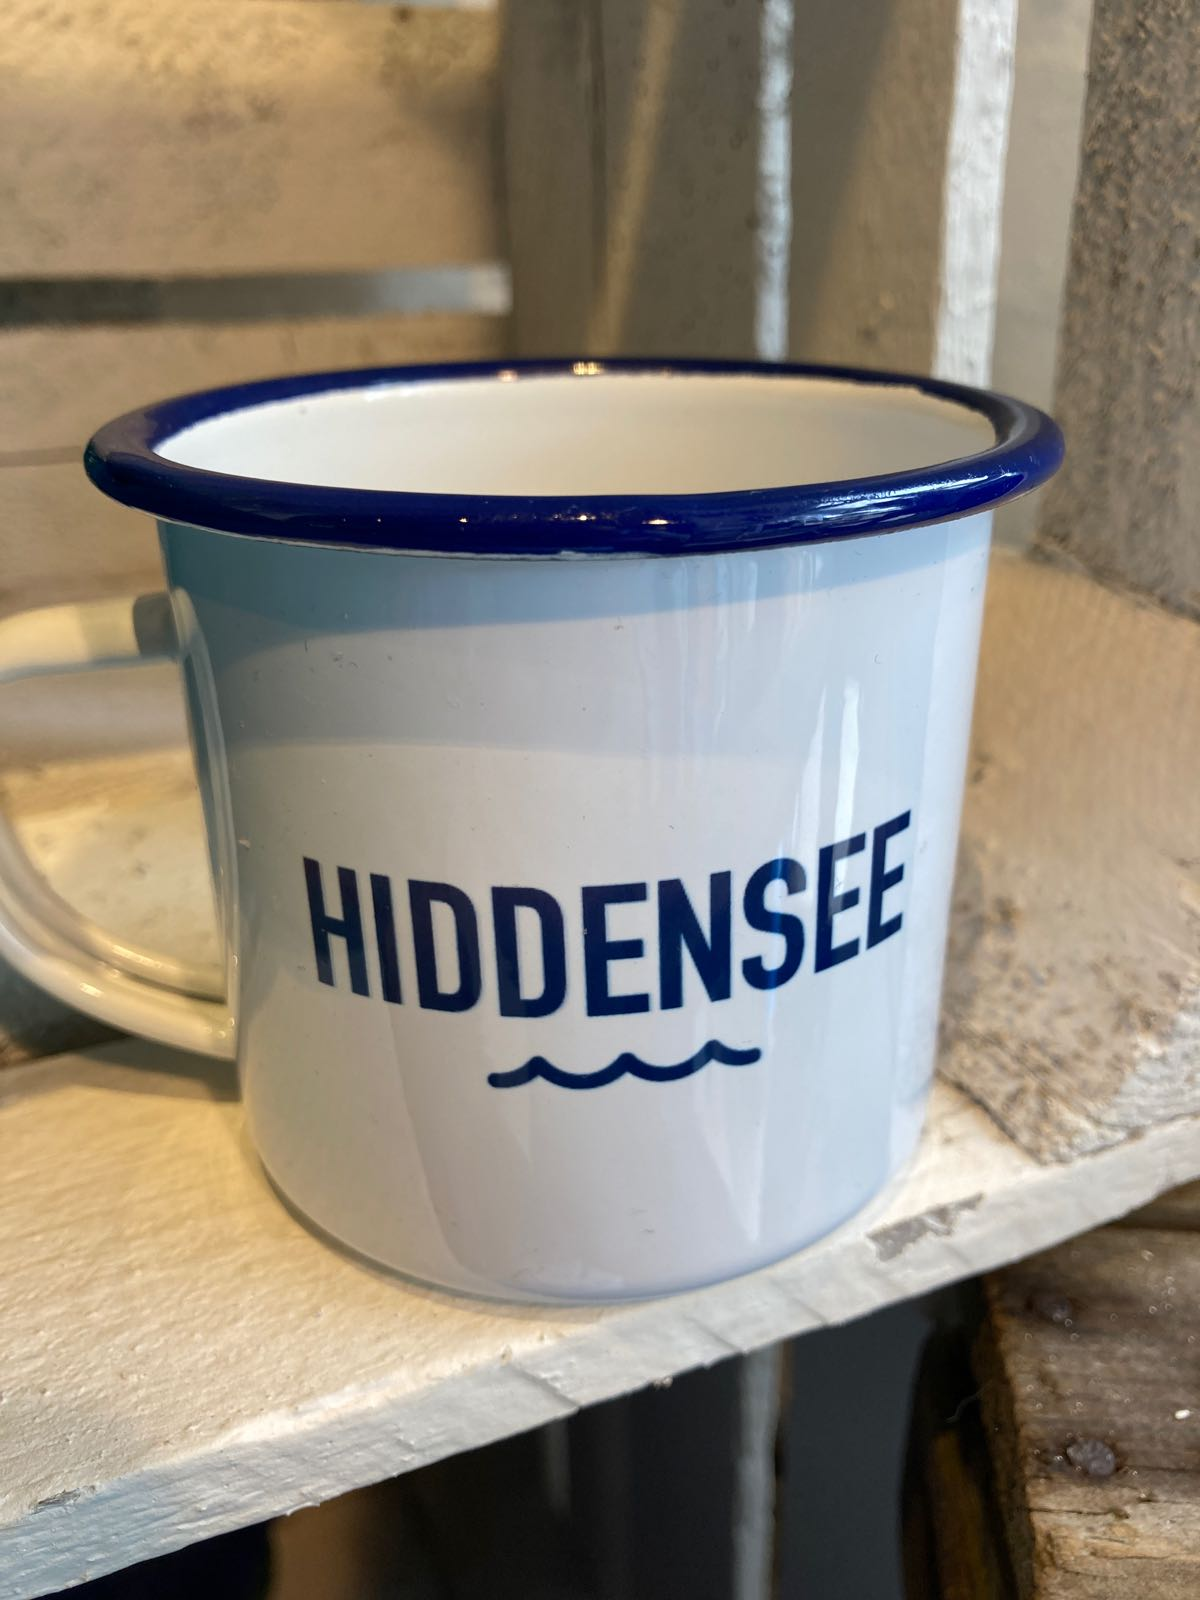 Hiddensee Emaille-Tasse